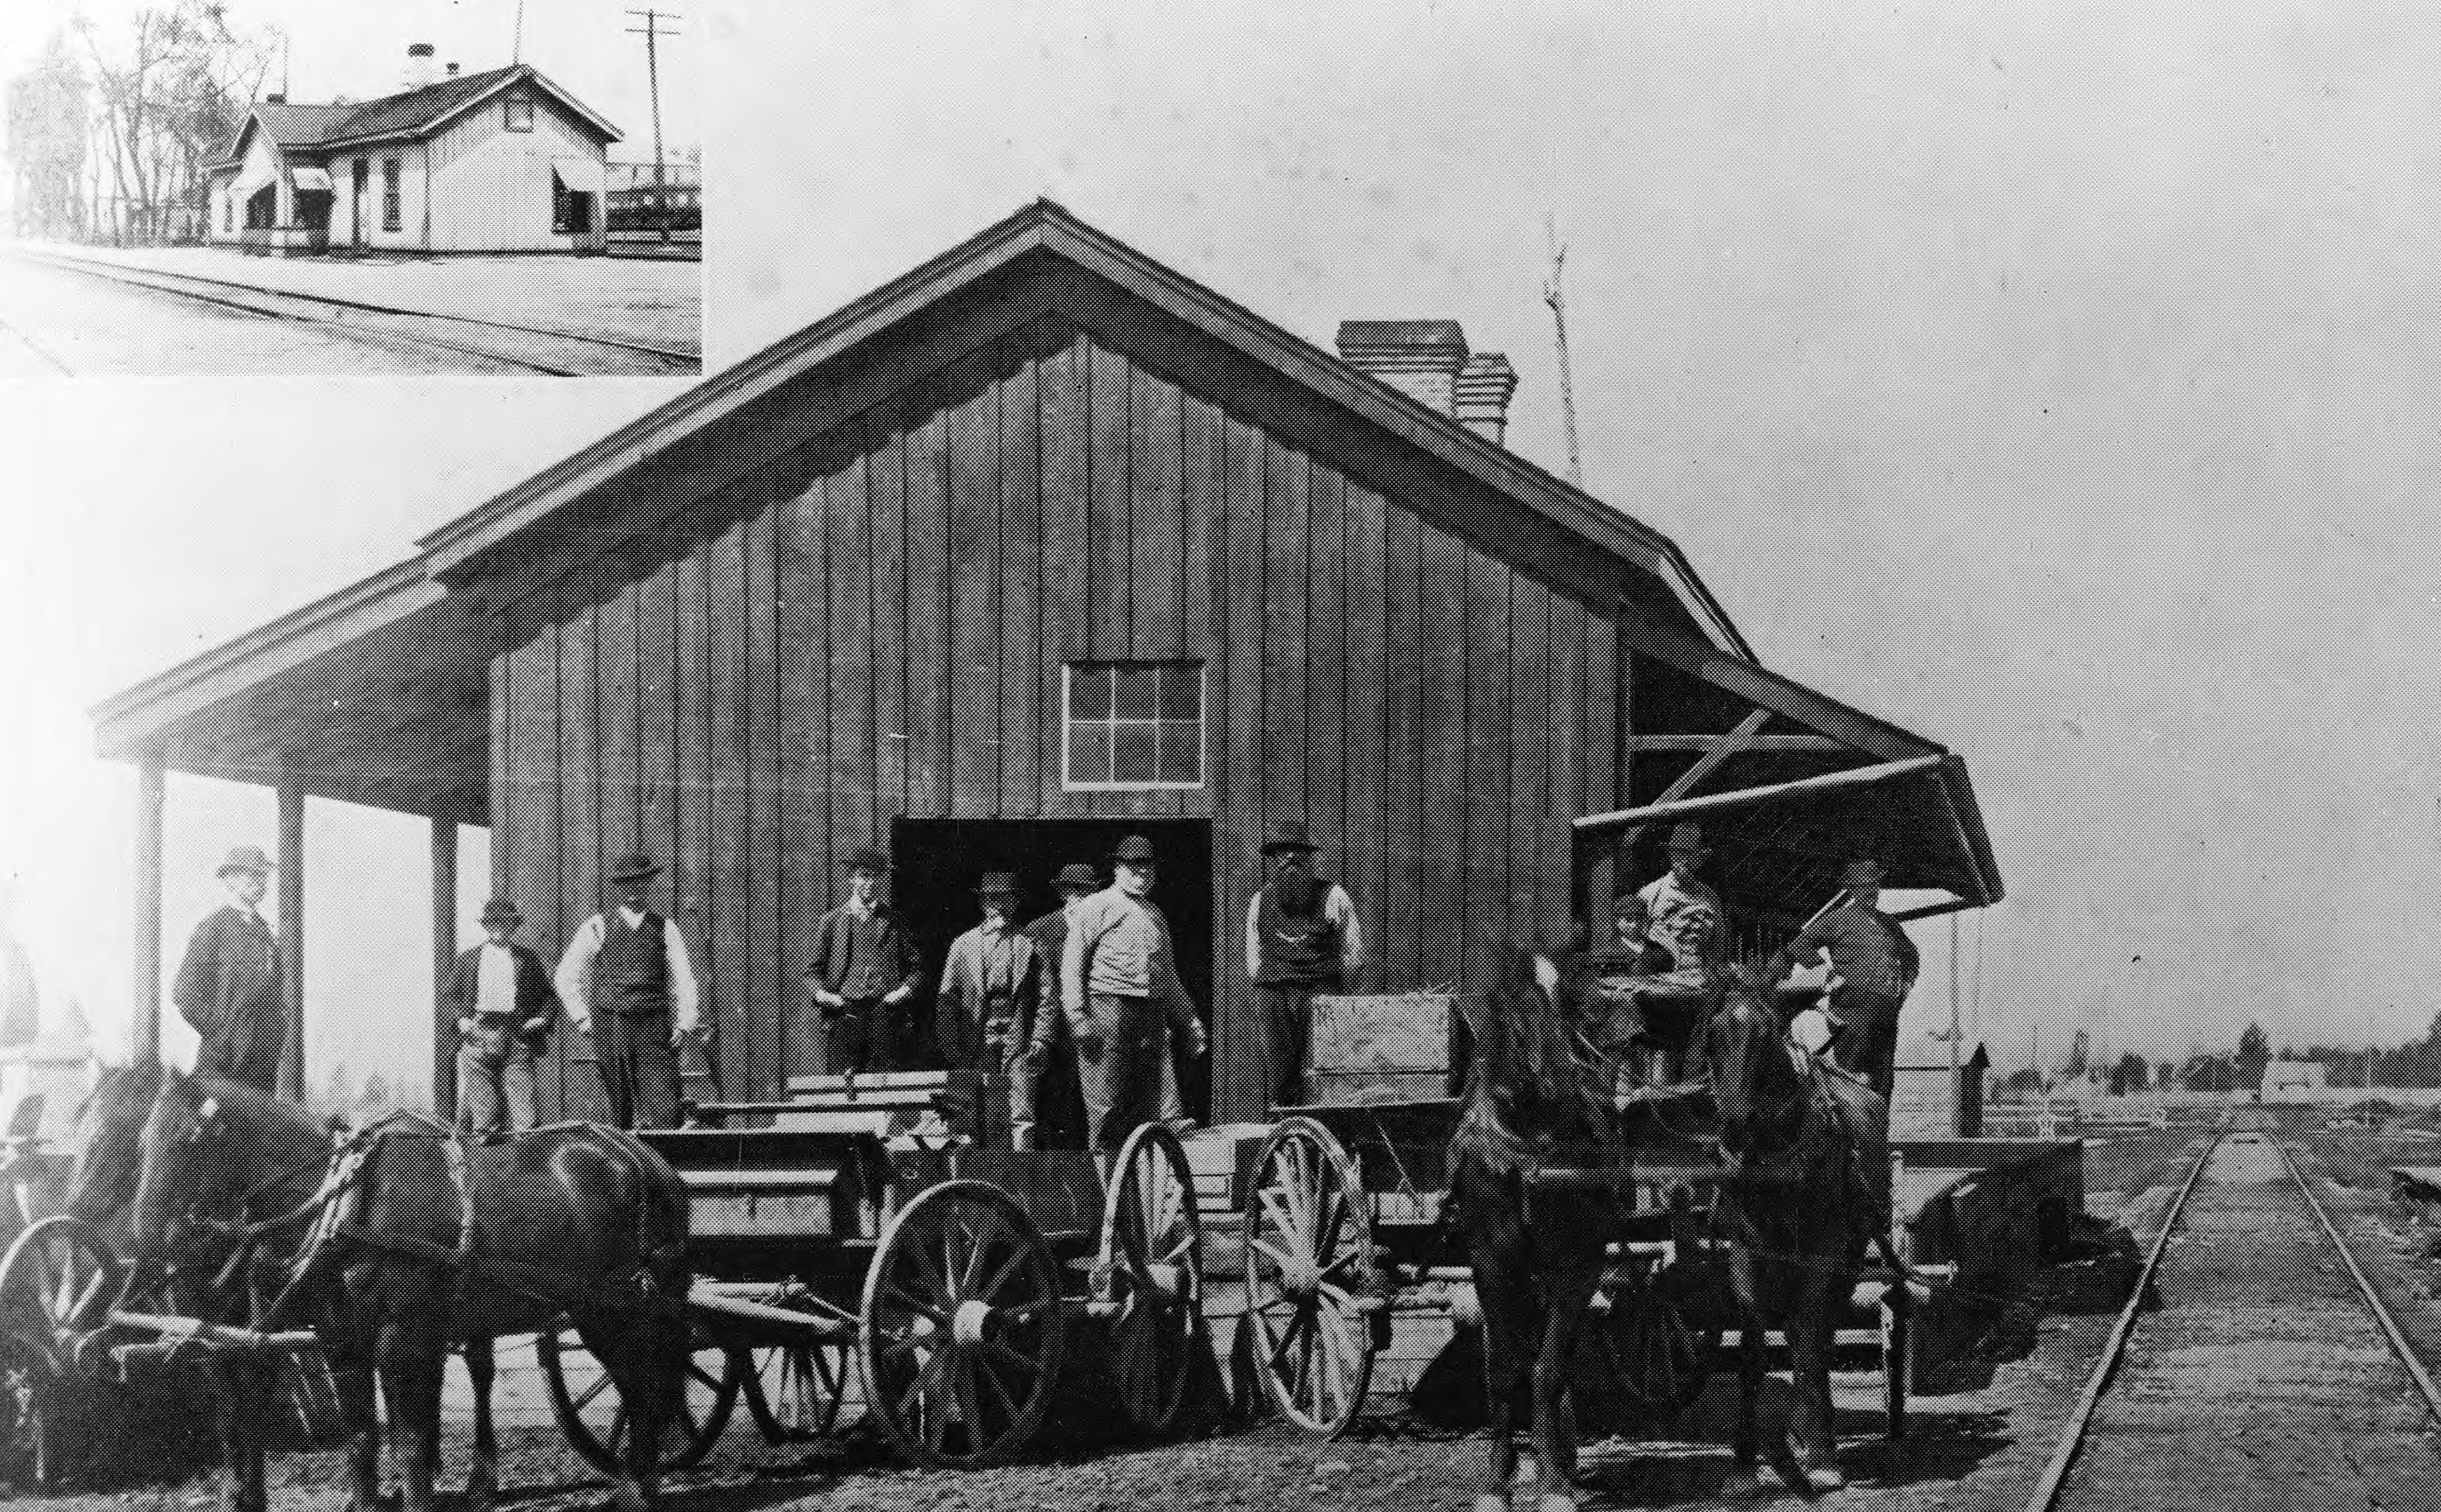 The Utah Central Railroad Depot at Provo, Utah, is photographed in 1887.